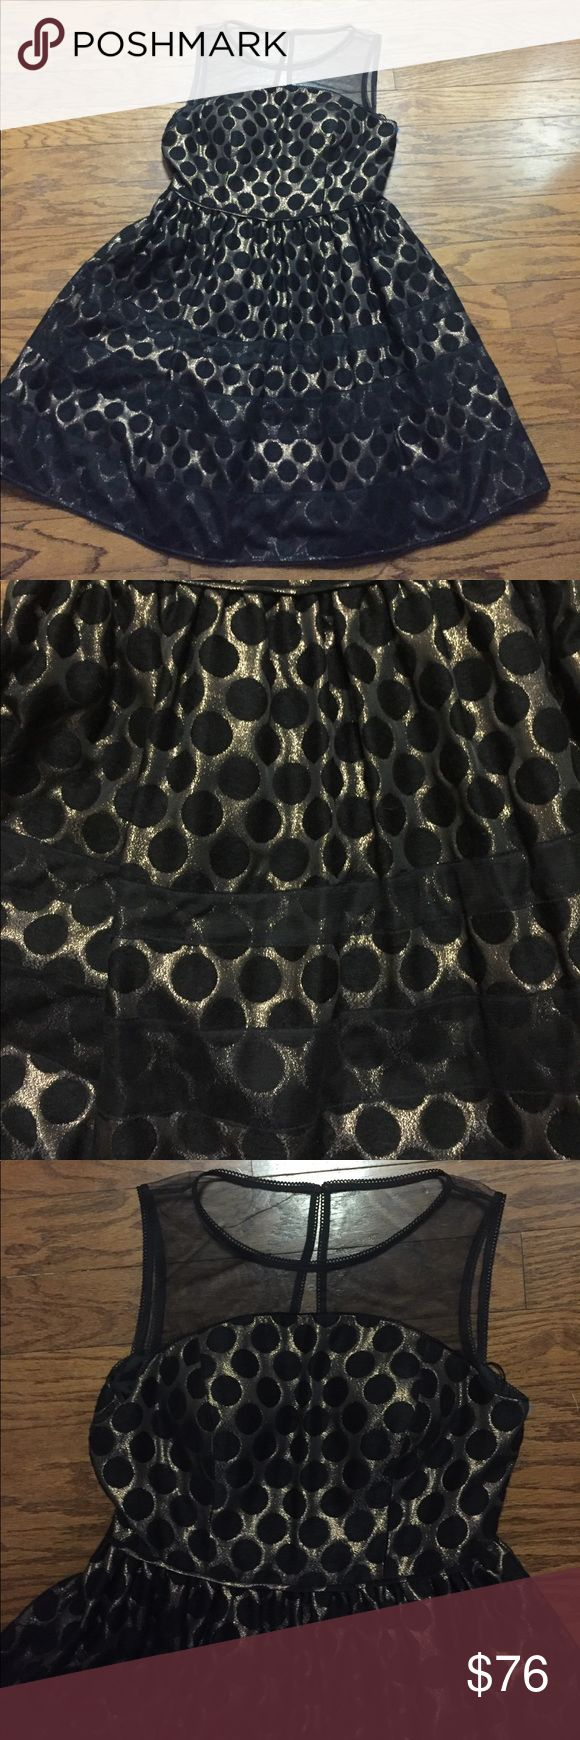 Adrianna Papell dress Black sheer top with gold metallic  and circular design. Fitted waist and full bottom lined. Special occasion dress Adrianna Papell Dresses